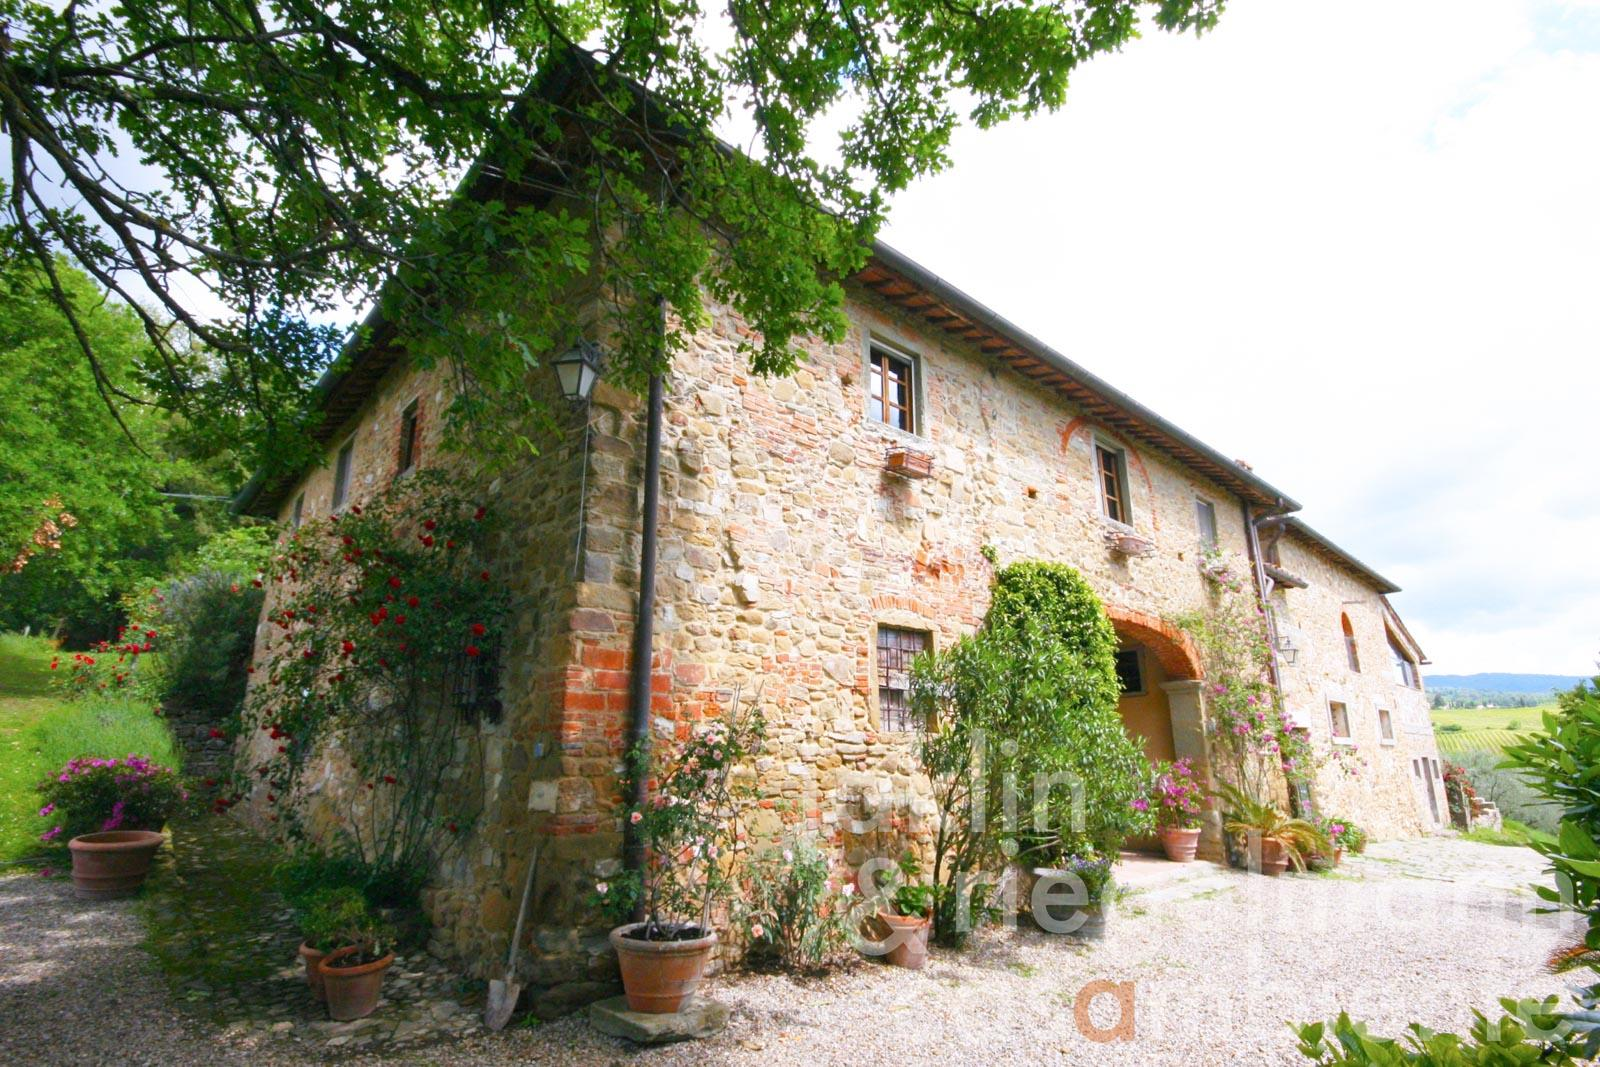 The small DOCG Chianti Classico winery for sale with characteristic country house close to Greve in Chianti